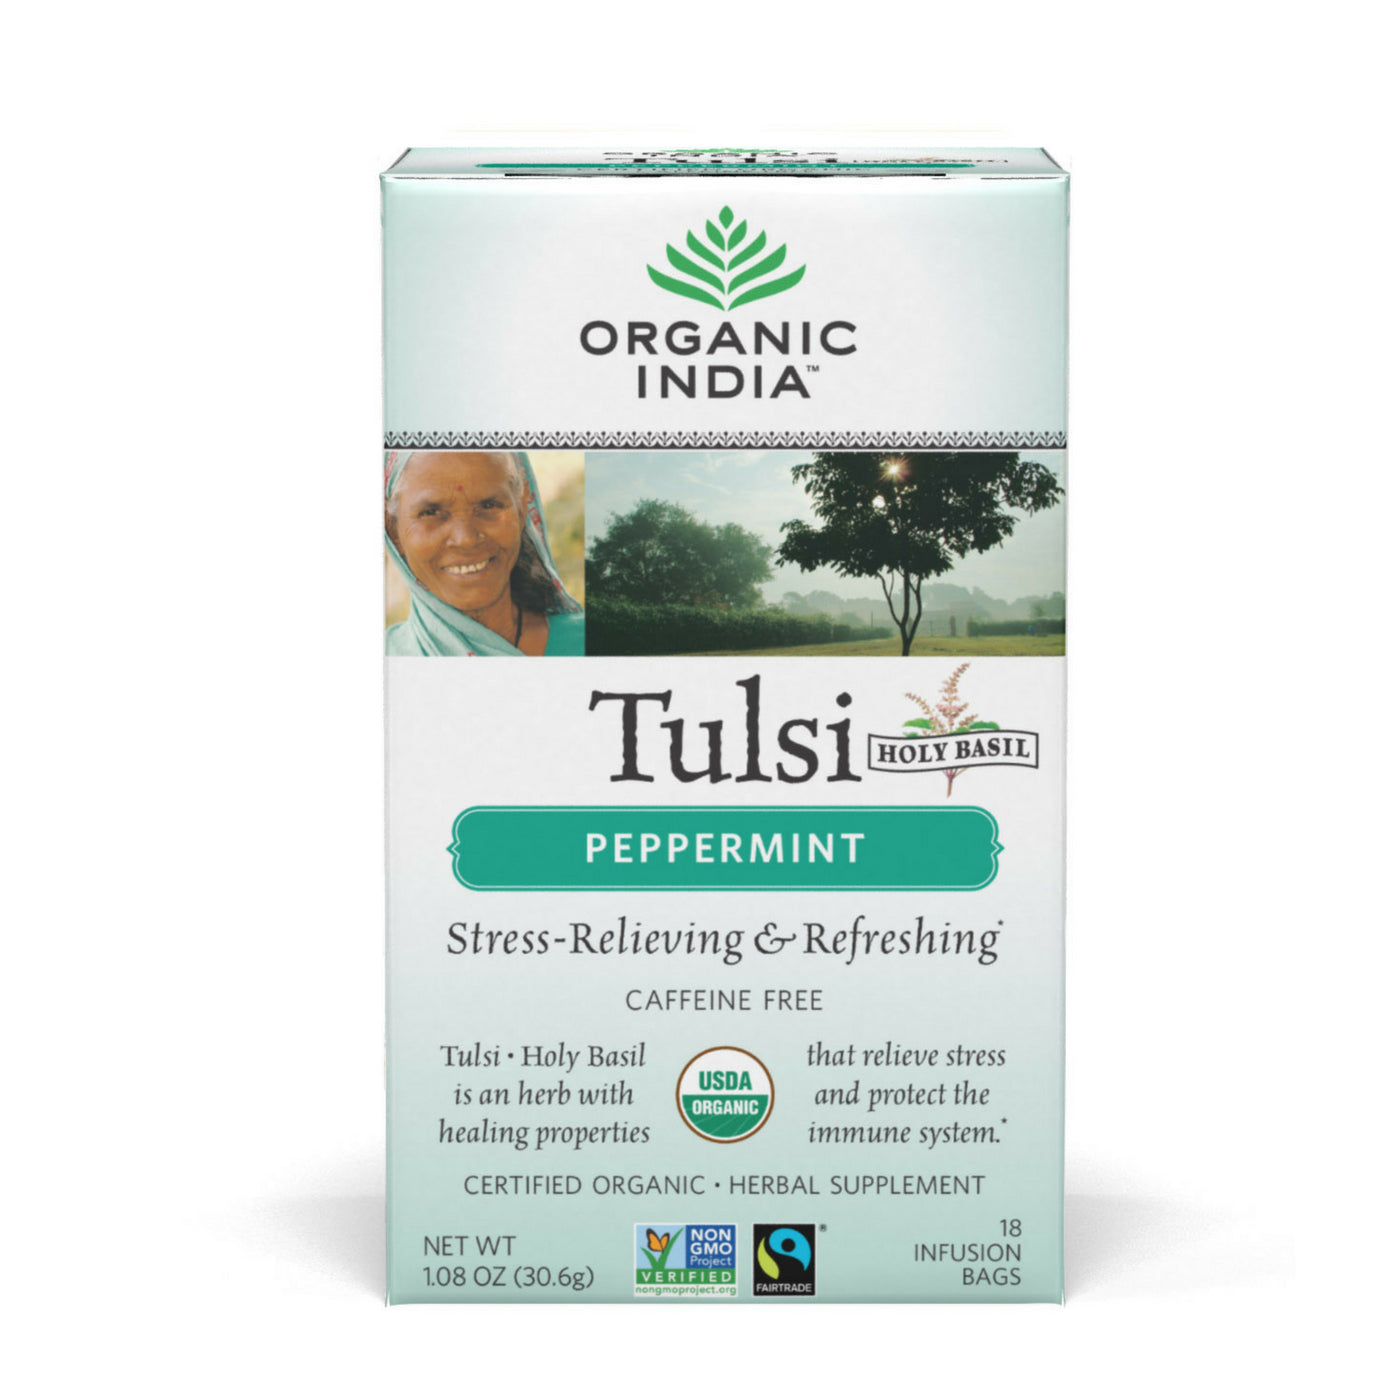 Organic India Tulsi Holy Basil Tea, Peppermint